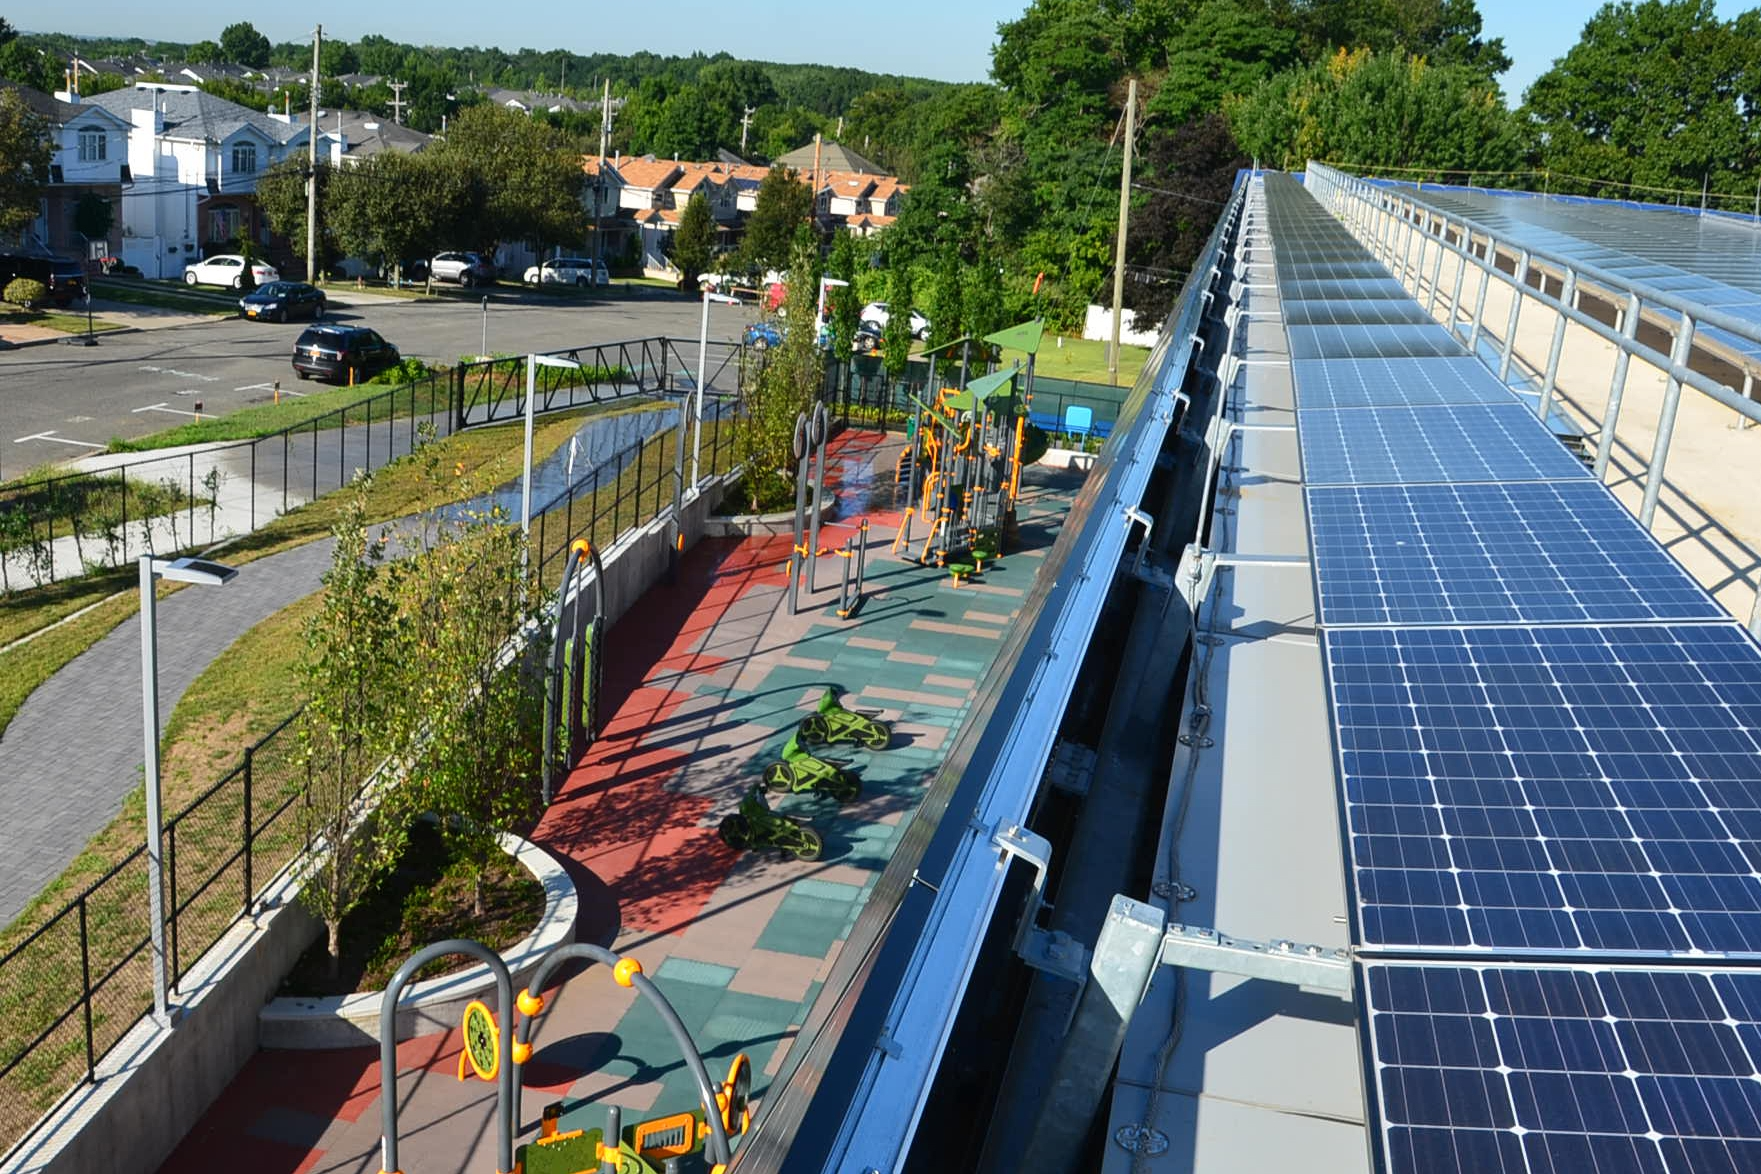 PV Panels Over the Playground